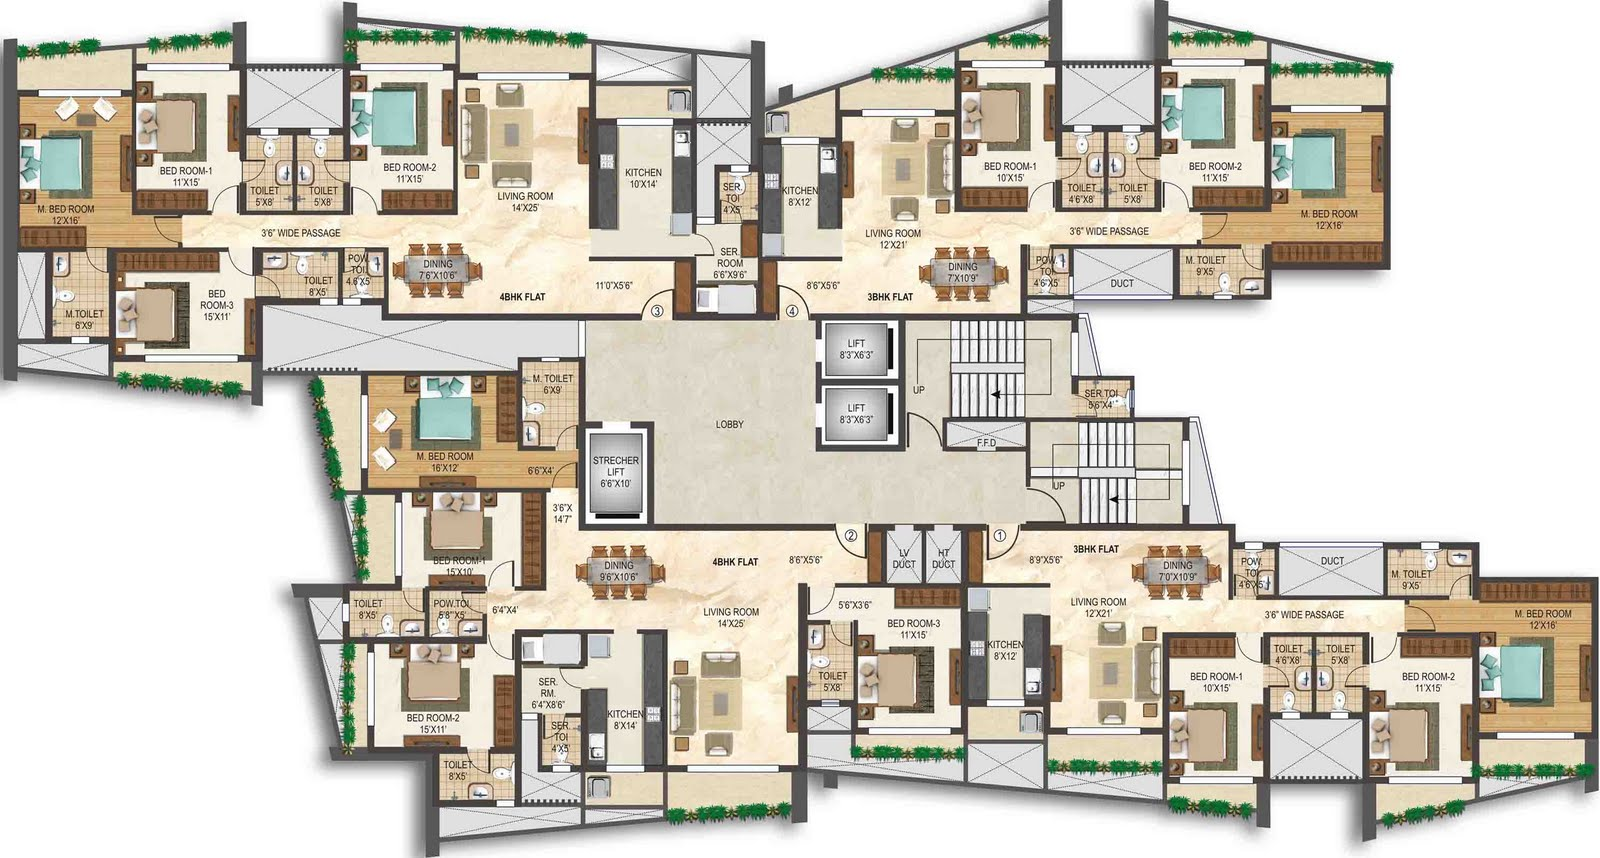 Free booking 3 4 bhk apartment oriana gandhi nagar for 4 apartment building plans